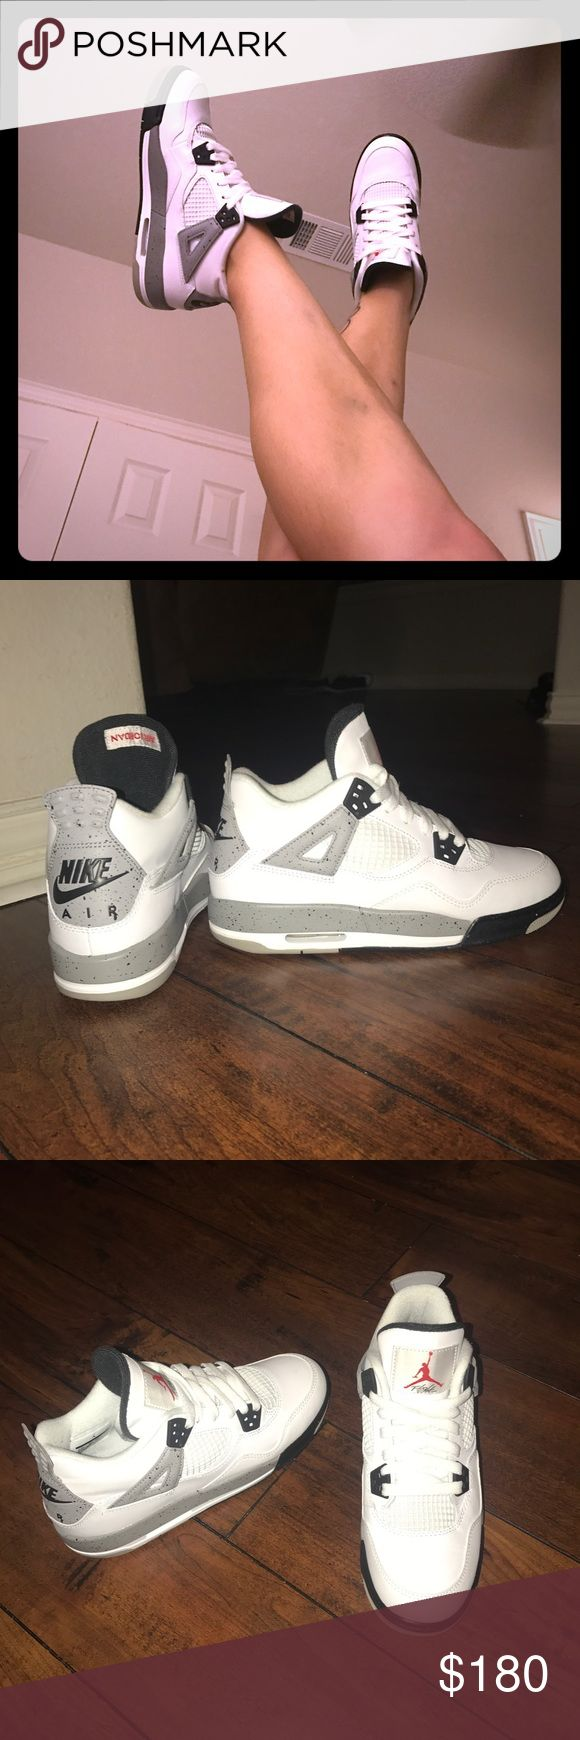 "RARE Air Jordan 4 Retro Og  Boys5.5Y, Women's 7.5 NIKE BOYS SIZE 5.5Y --- WOMENS SIZE 7.5 --- FIT ME PERFECT & I AM A 7.5 IN ALMOST EVERY BRAND. THESE HAVE BEEN WORN 1 TIME FOR ABOUT 2 HOURS, THAT'S IT. SO THEY'RE PRACTICALLY BRAND NEW. EXCELLENT EXCELLENT USED CONDITION. THESE AIR JORDAN 4'S RETRO OG BG ""CEMENT"" WHITE/FIRE RED-BLACK LEATHER, ALWAYS TURN HEADS! A RARE GORGEOUS FLY SHOE FOR SURE! *I will go lower via 🅿️ 🅿️* Nike Shoes"